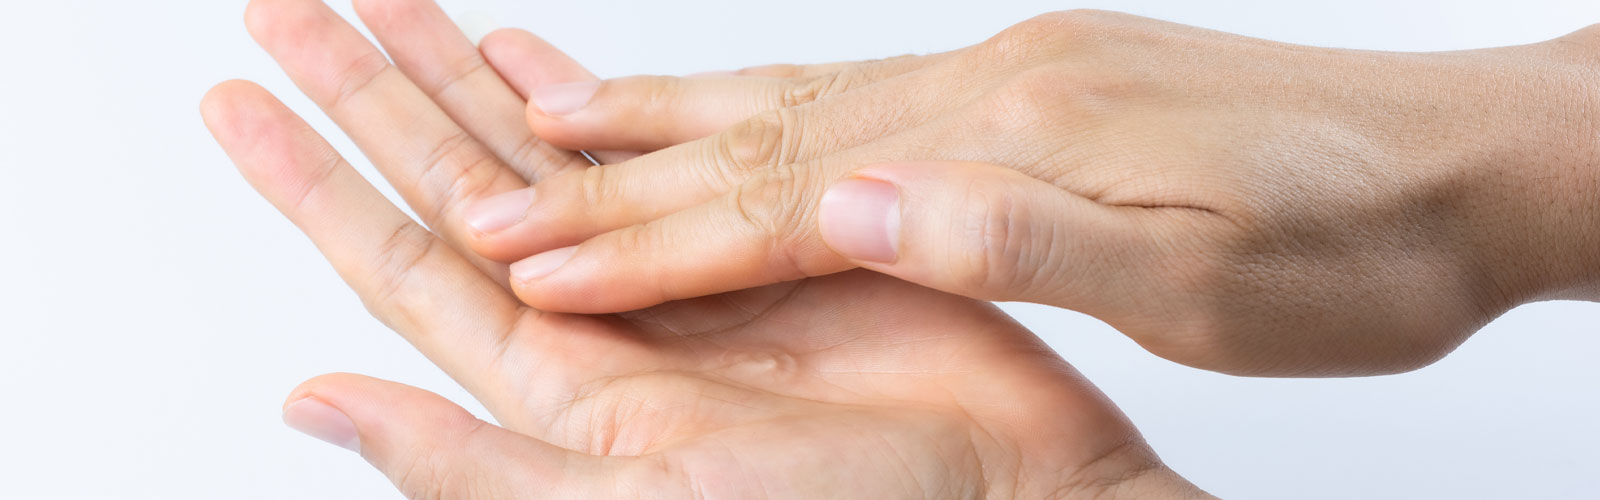 Lubricant on hands